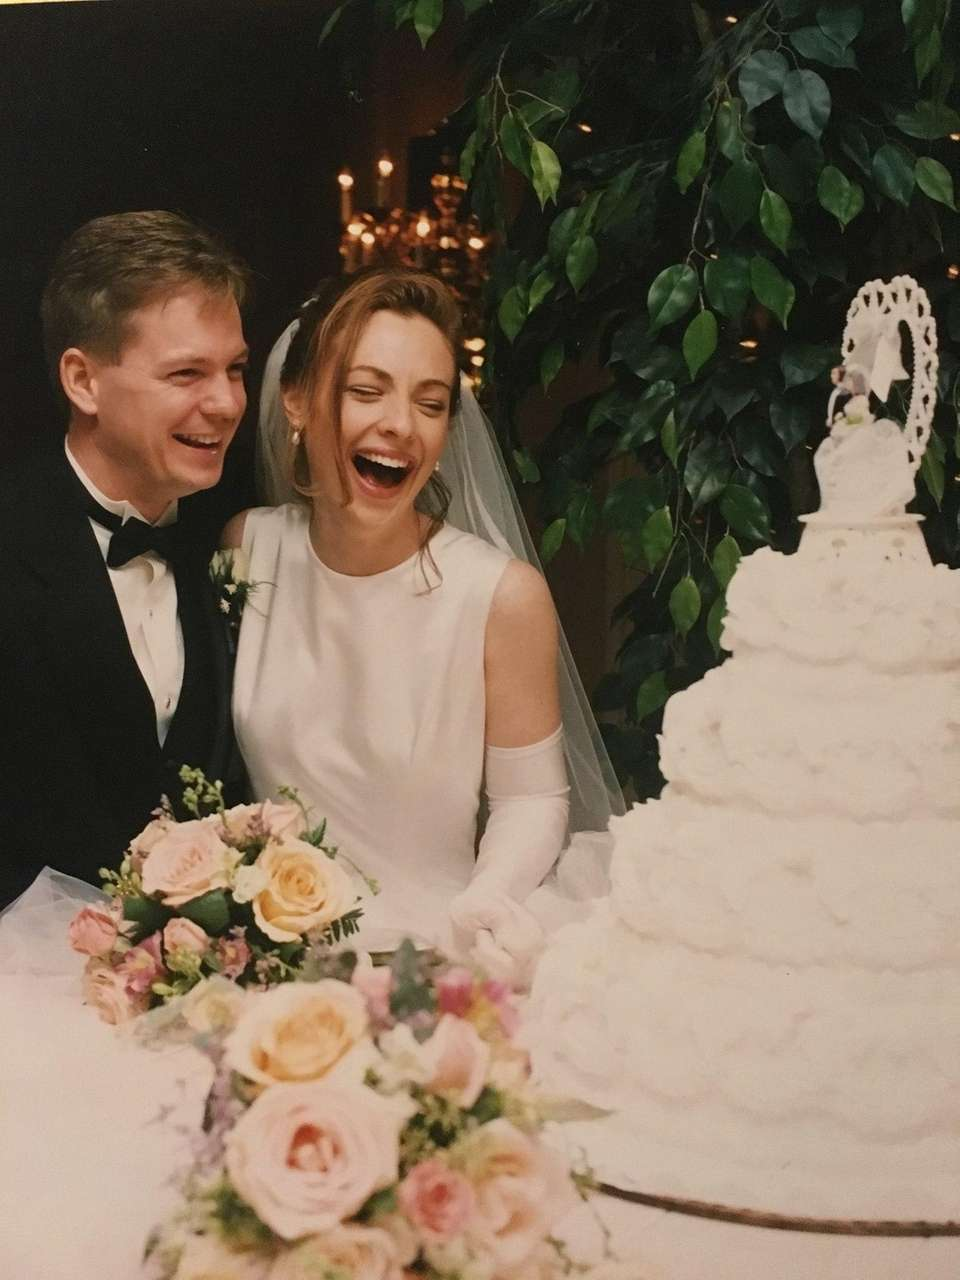 Leanne and Don Boller, on Nov. 1, 1997.